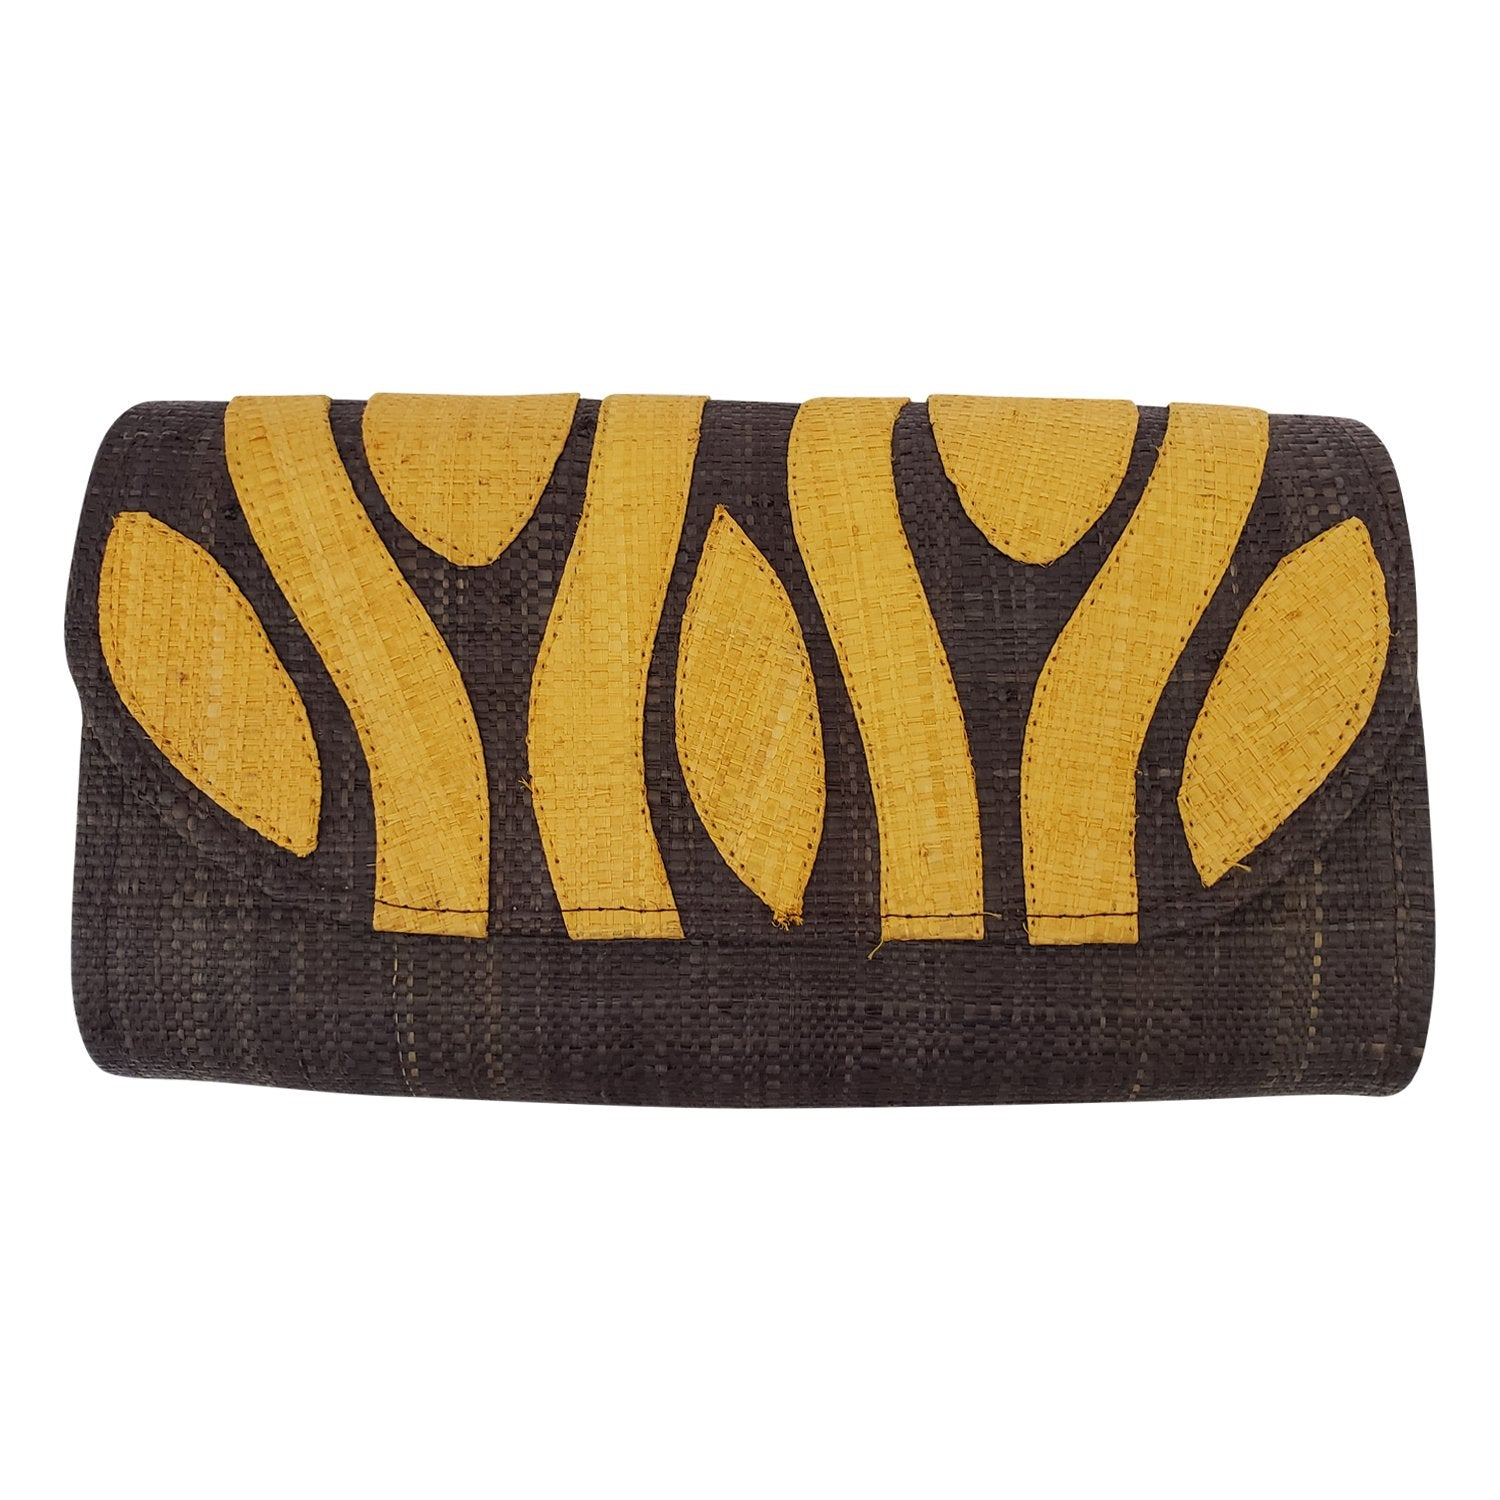 Authentic Handwoven Brown Madagascar Raffia Clutch w/ Orange Accents